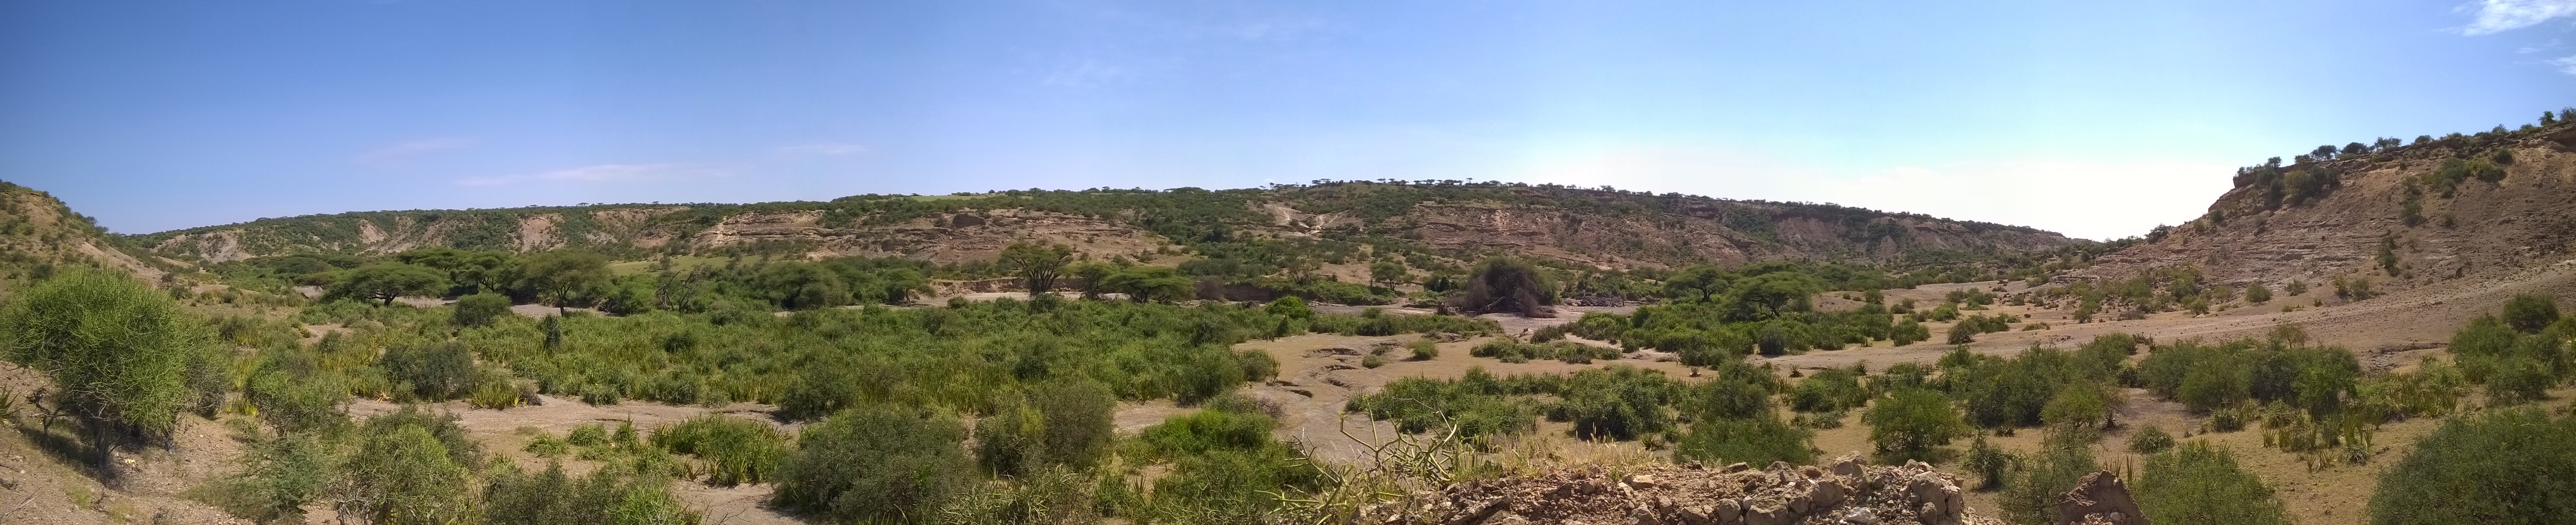 Panoramic view of the edge of the large gorge, with desert plants all around.